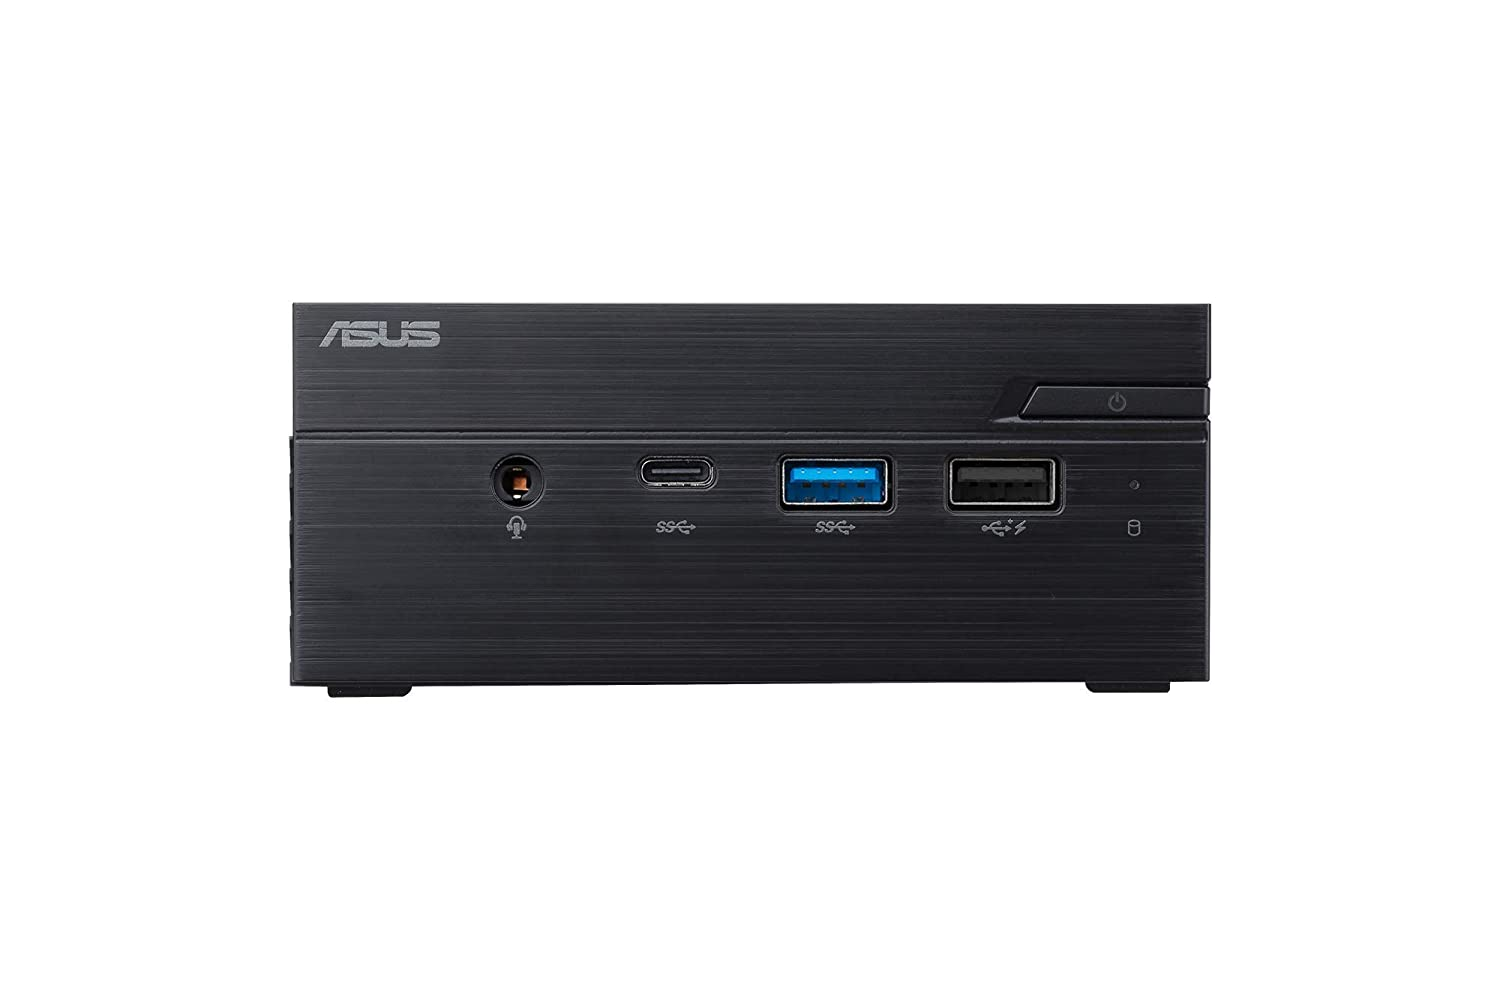 ASUS PN40-CB123ZC - Ordenador de Sobremesa Mini PC (Intel Celeron J4005, 4GB RAM, 64GB SSD, tarjeta gráfica integrada Intel UHD Graphics, Windows 10 PRO) Negro